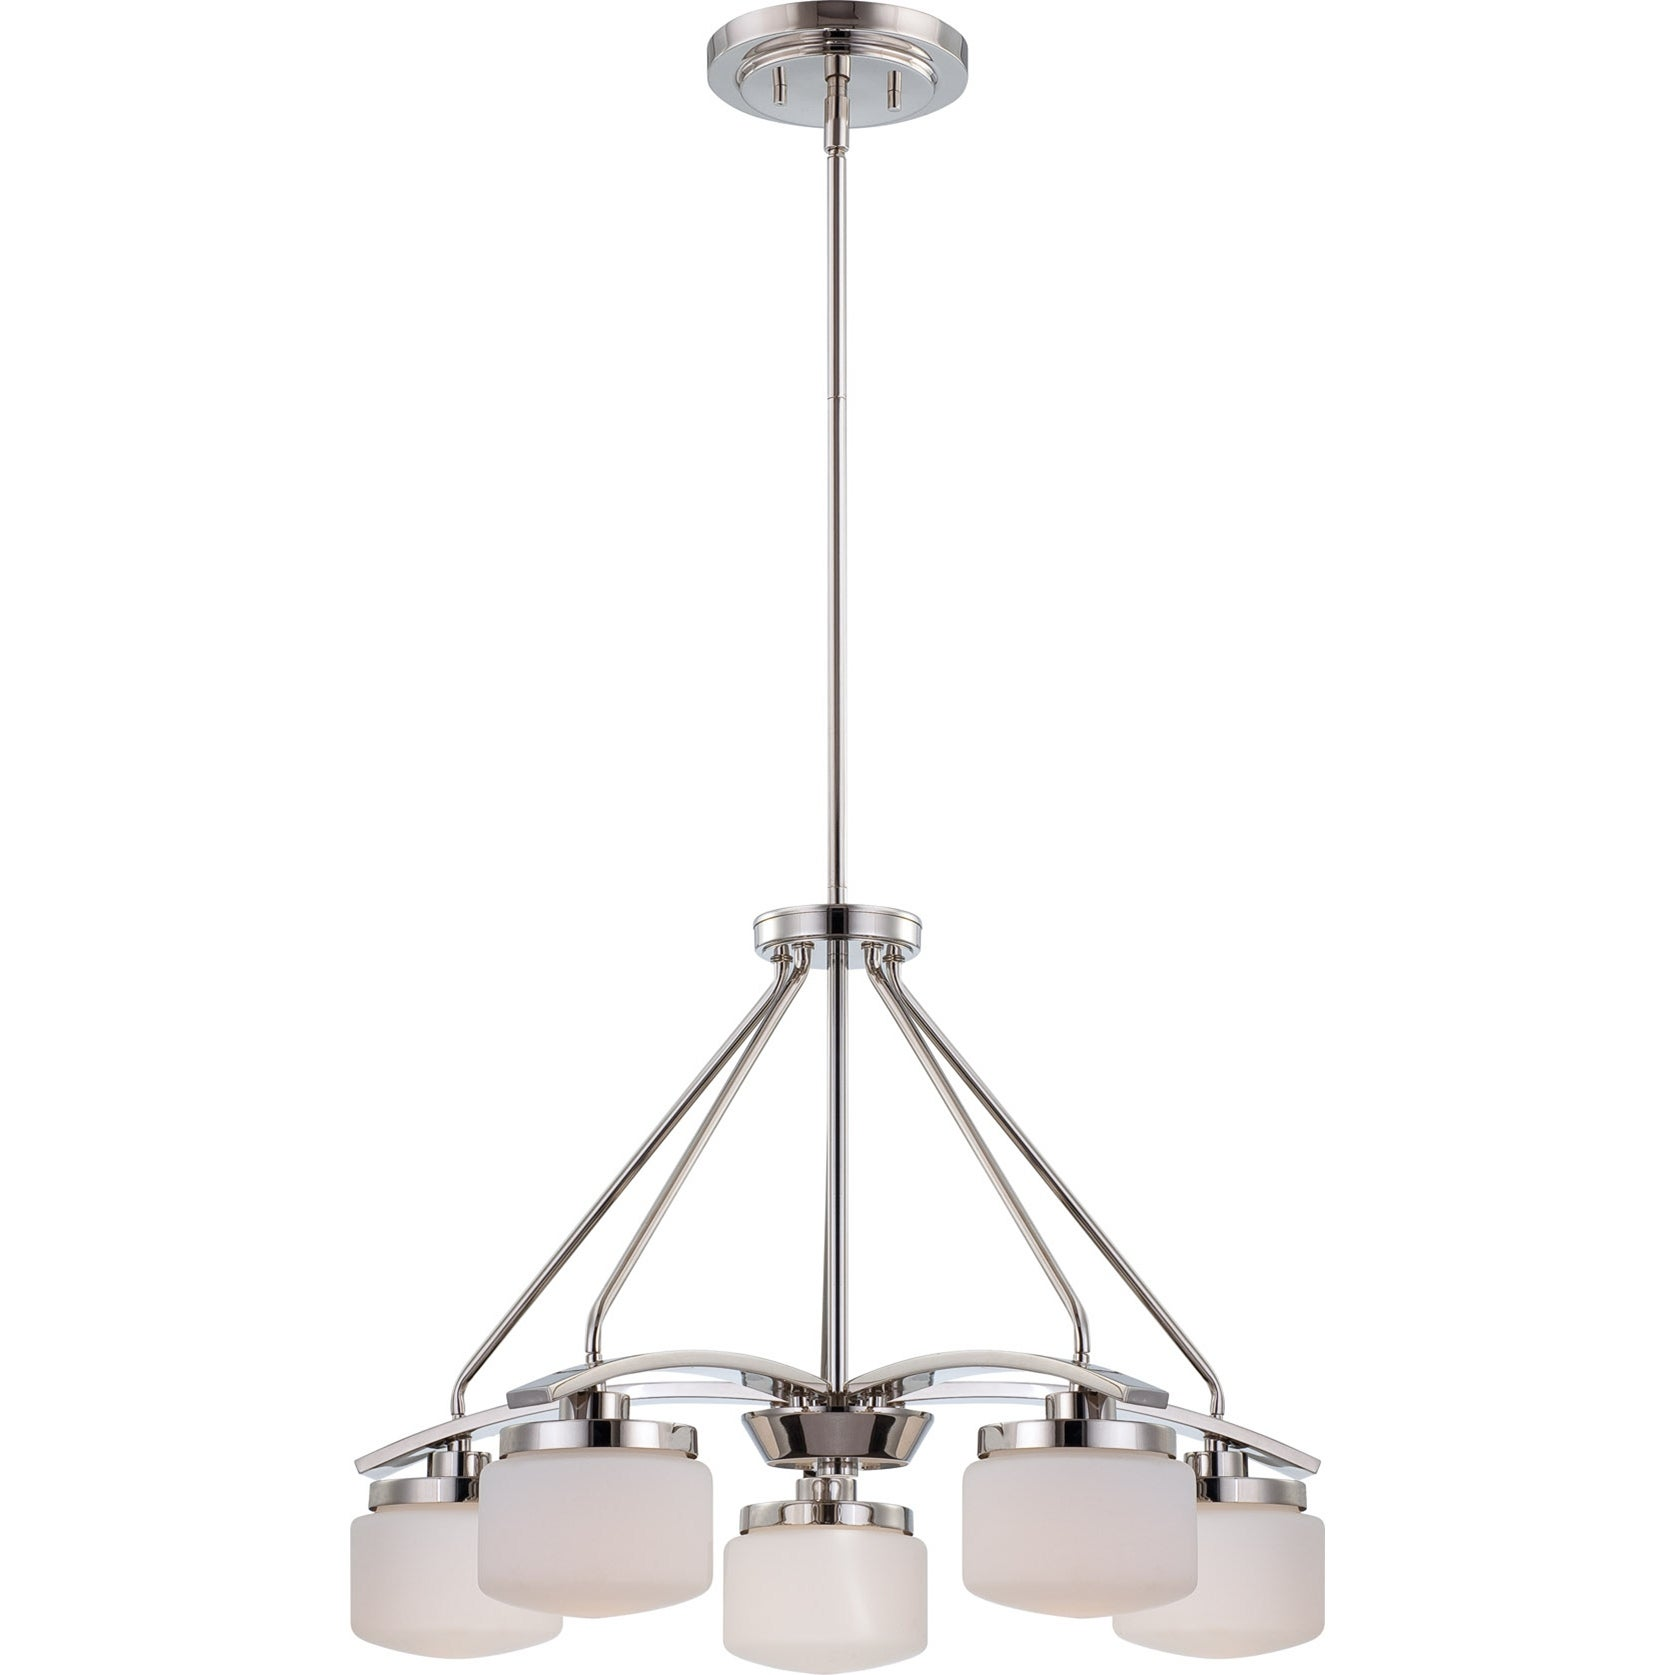 Nuvo 'Austin' 5-light Polished Nickel Chandelier